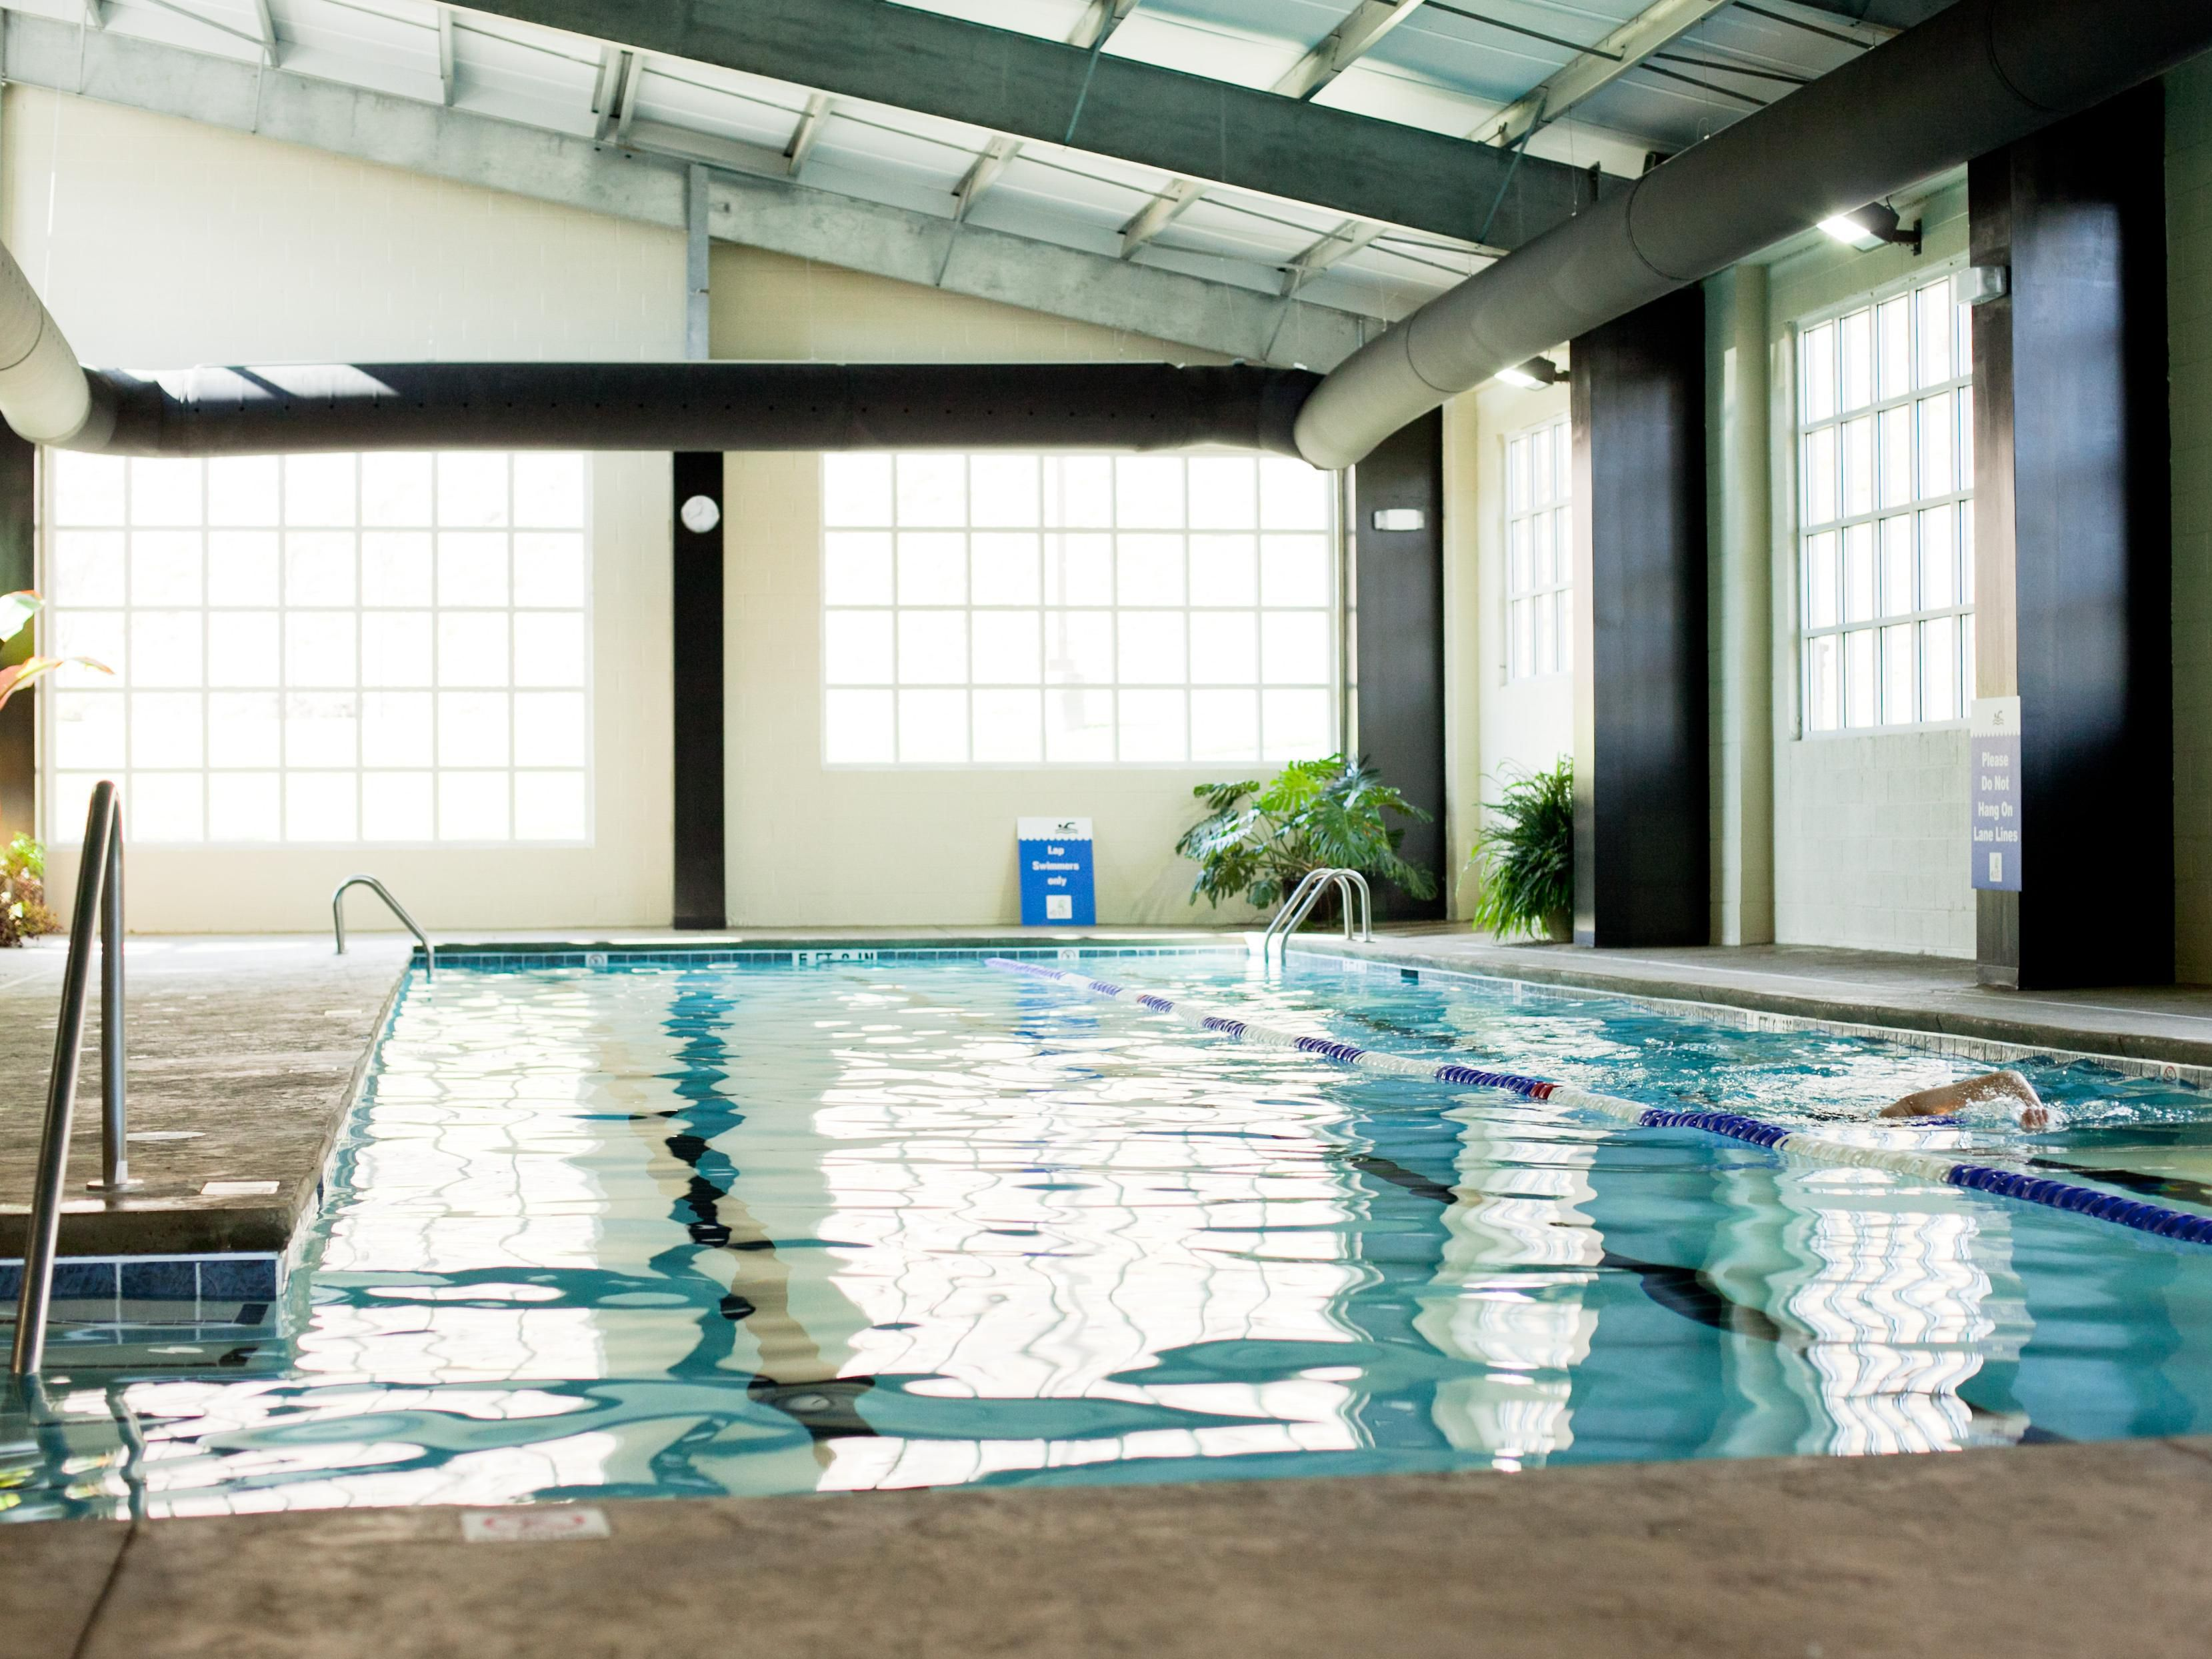 Hotel Asheville Nc Indoor Pool 2018 World 39 S Best Hotels